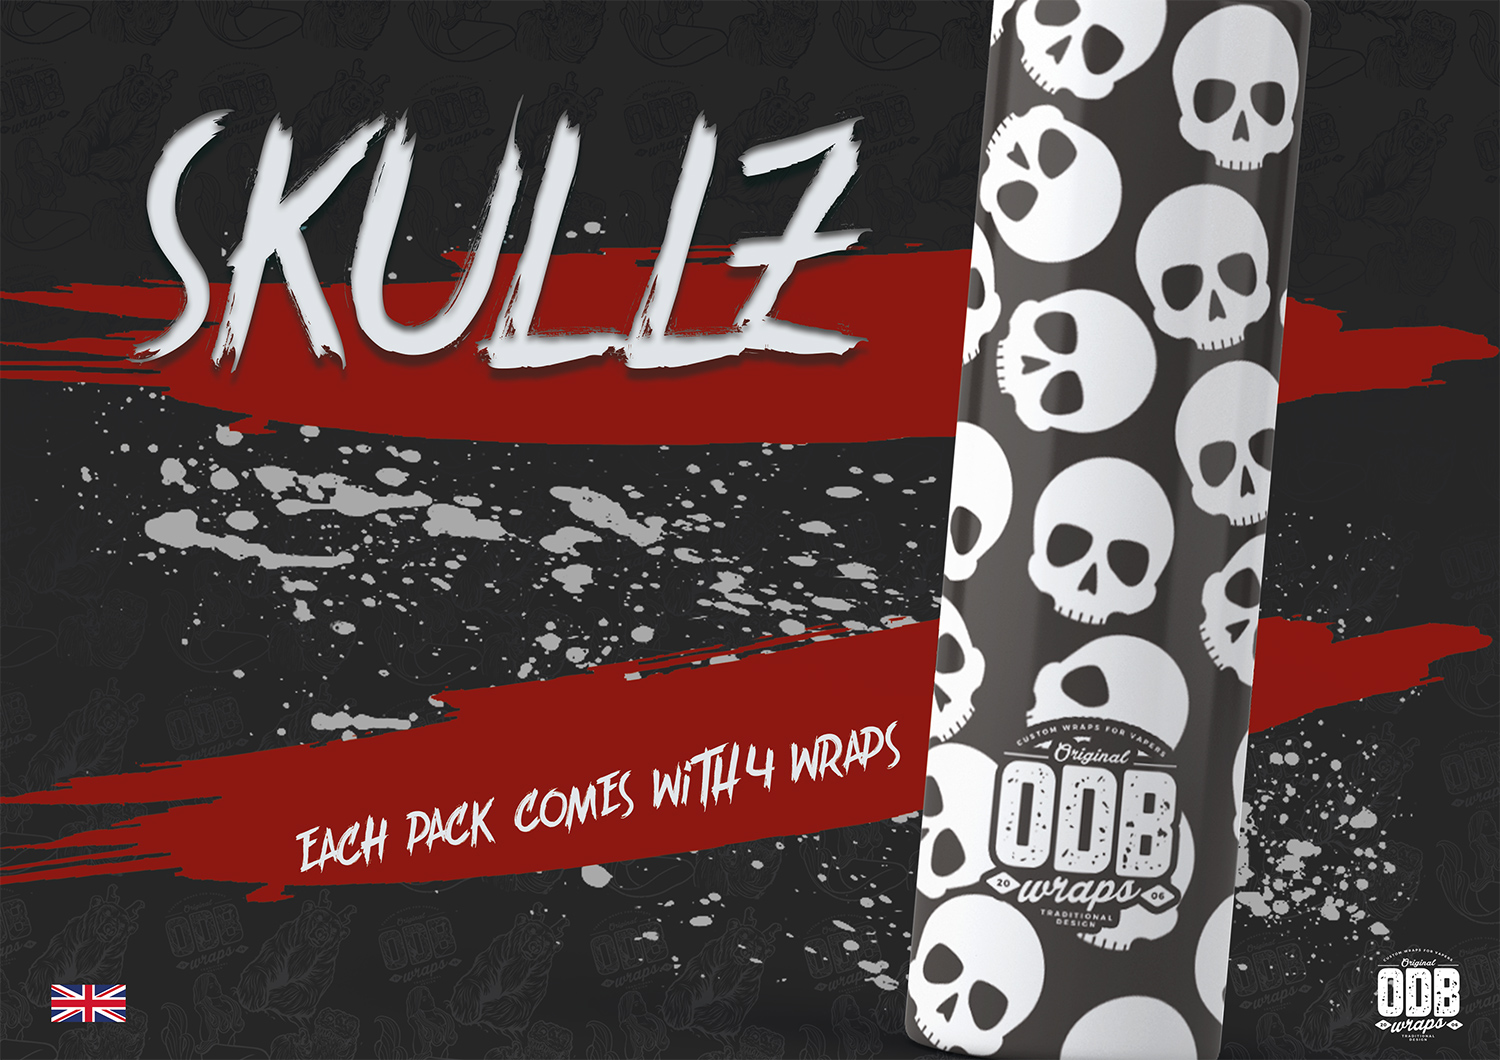 Skullz ODB Battery Wraps 4 Pack